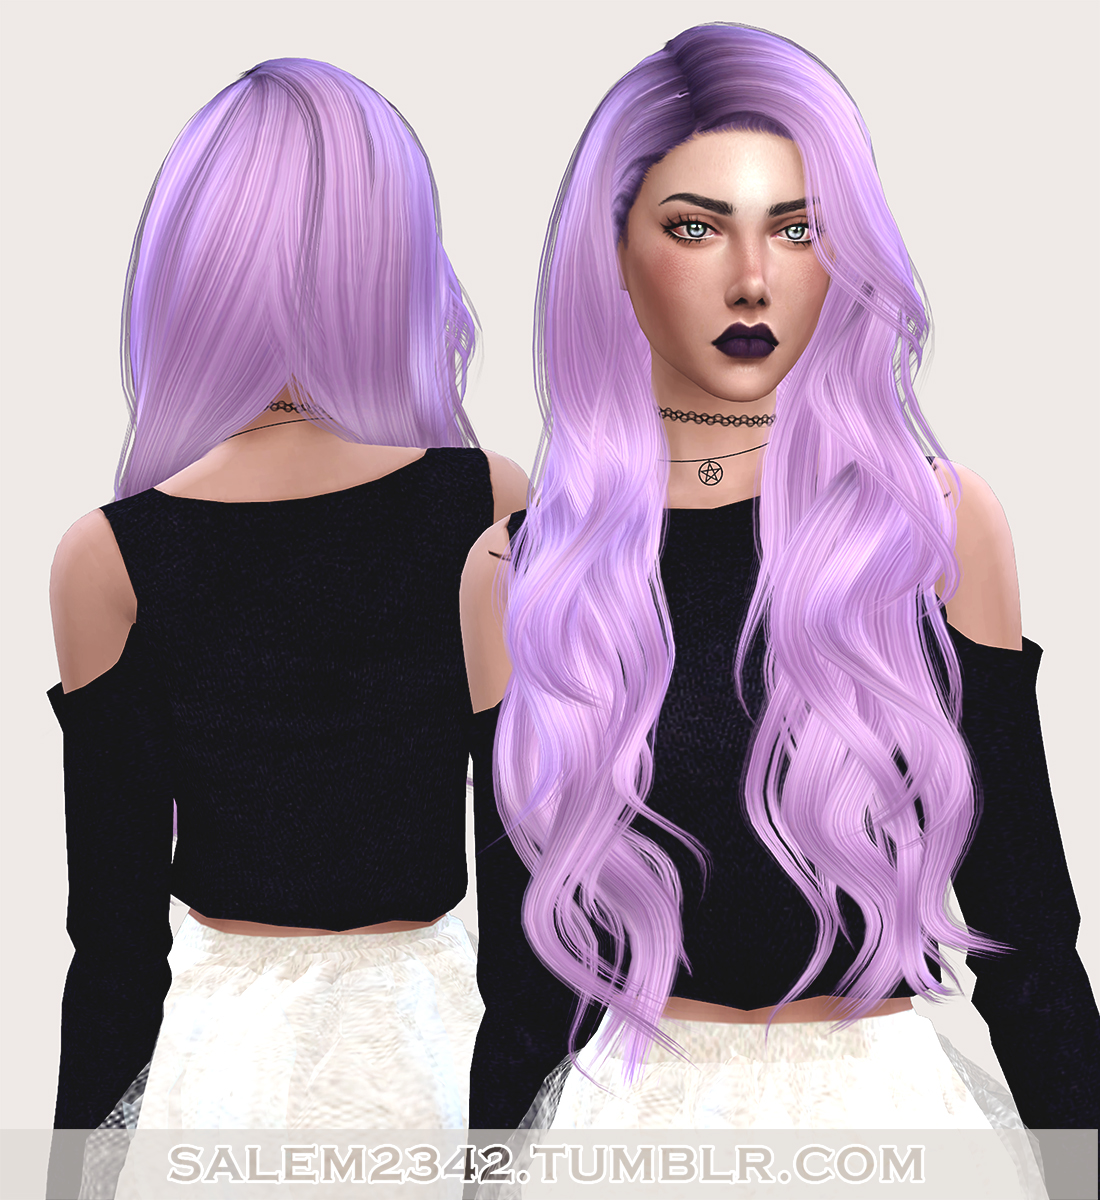 salem- Stealthic Envy Hair Retexture (TS4)